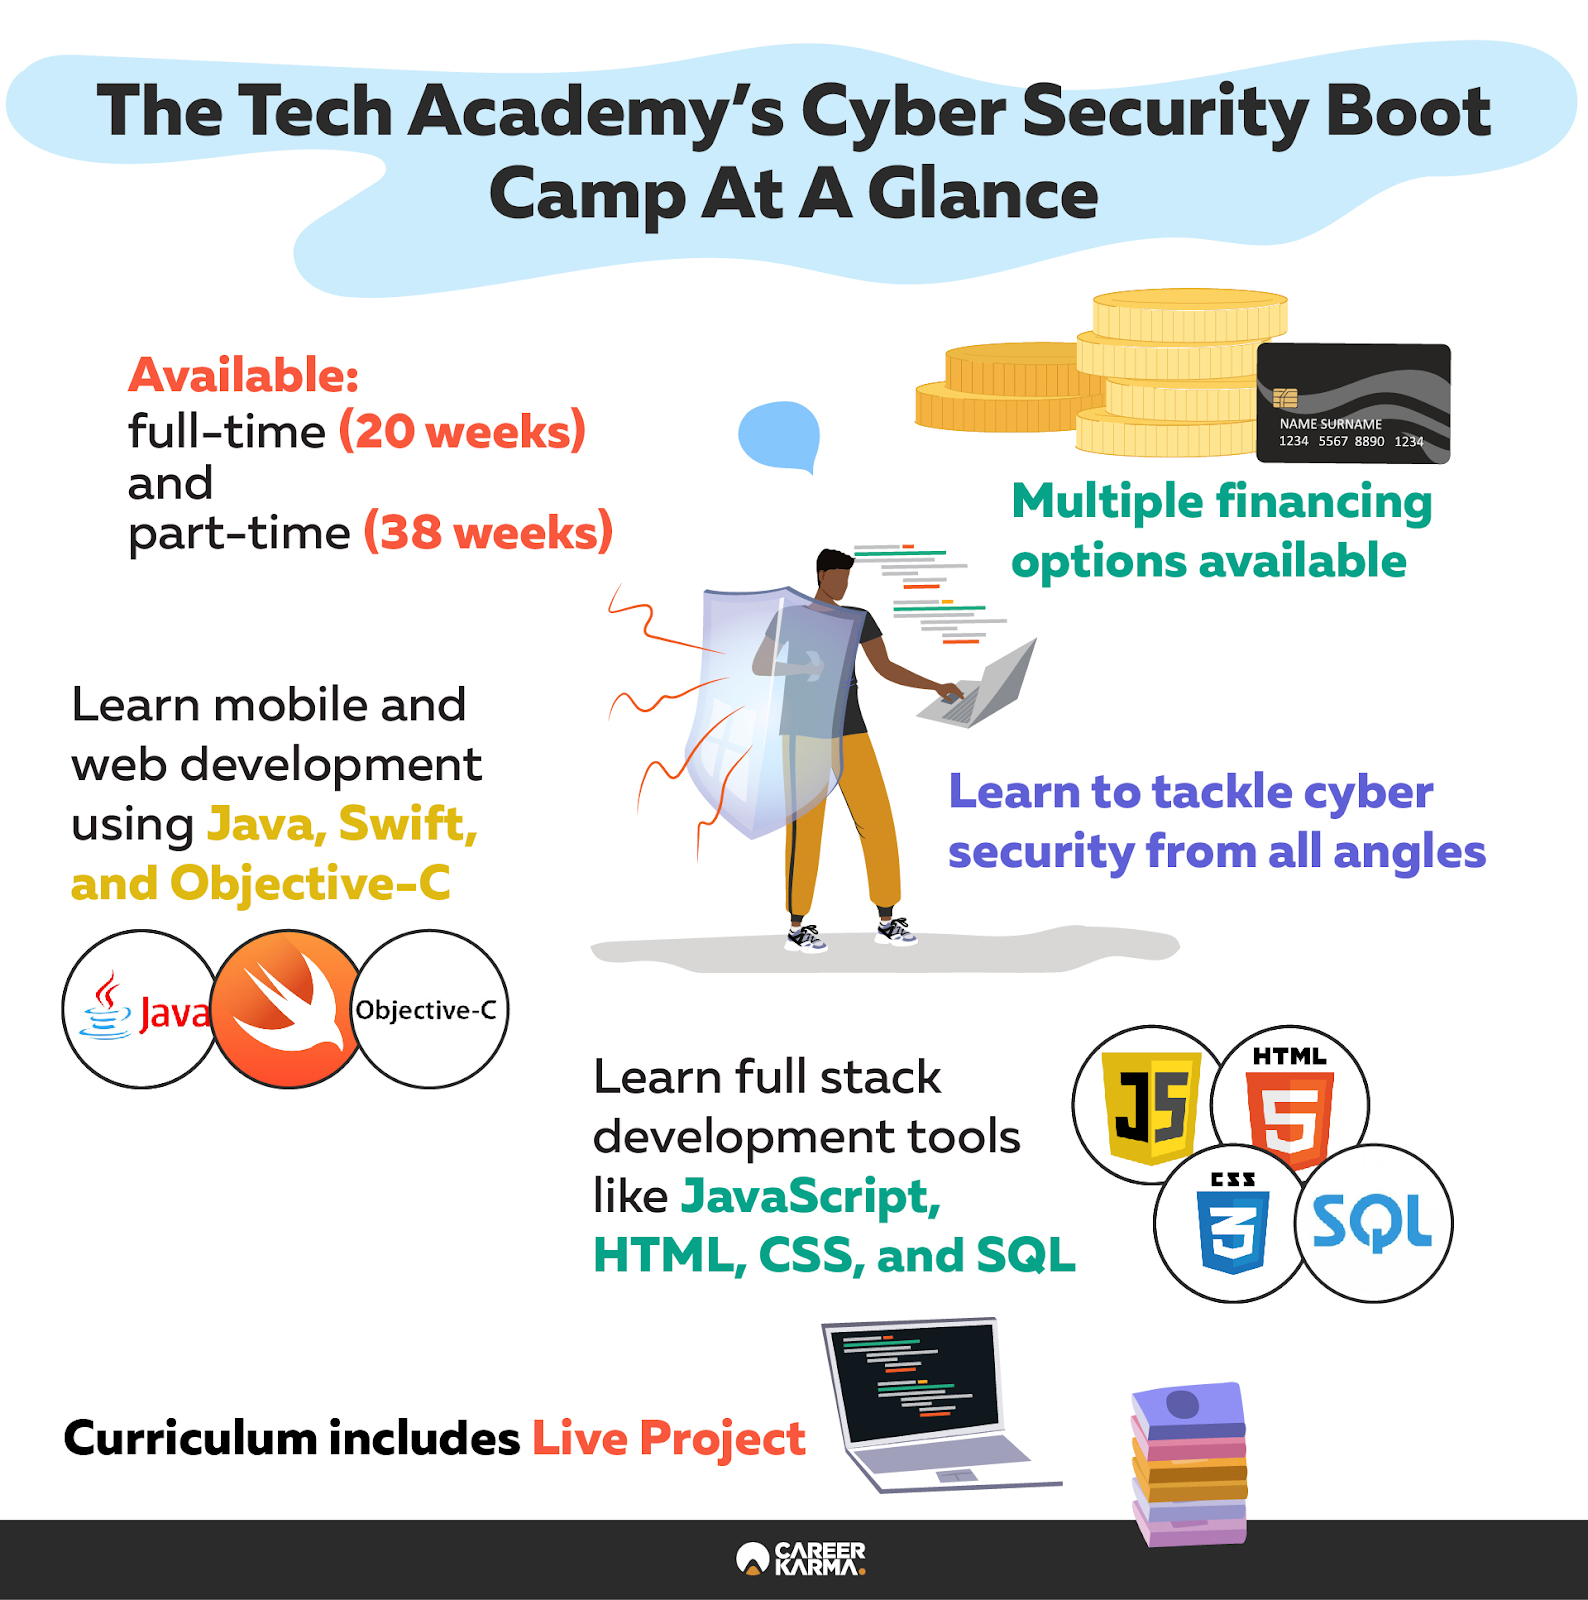 Infographic covering The Tech Academy's Cyber Security boot camp